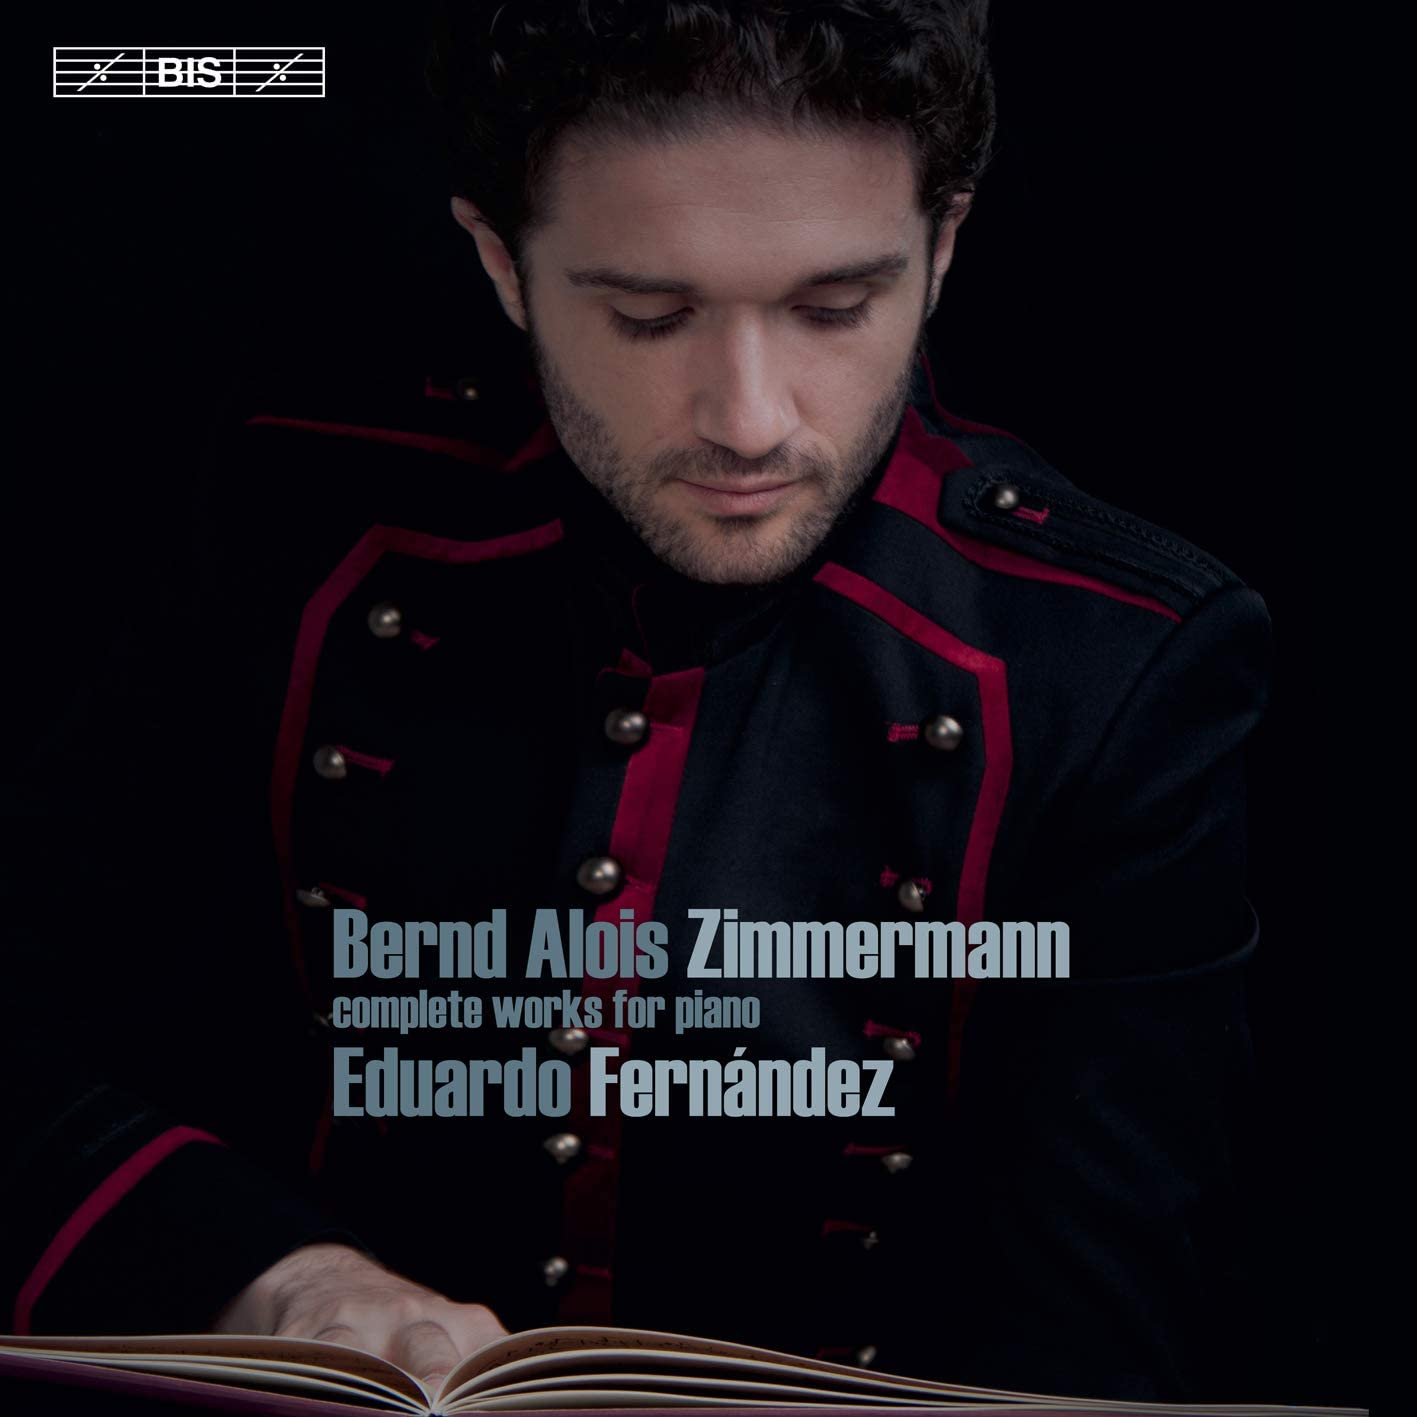 Review of ZIMMERMANN Complete works for piano (Eduardo Fernández)